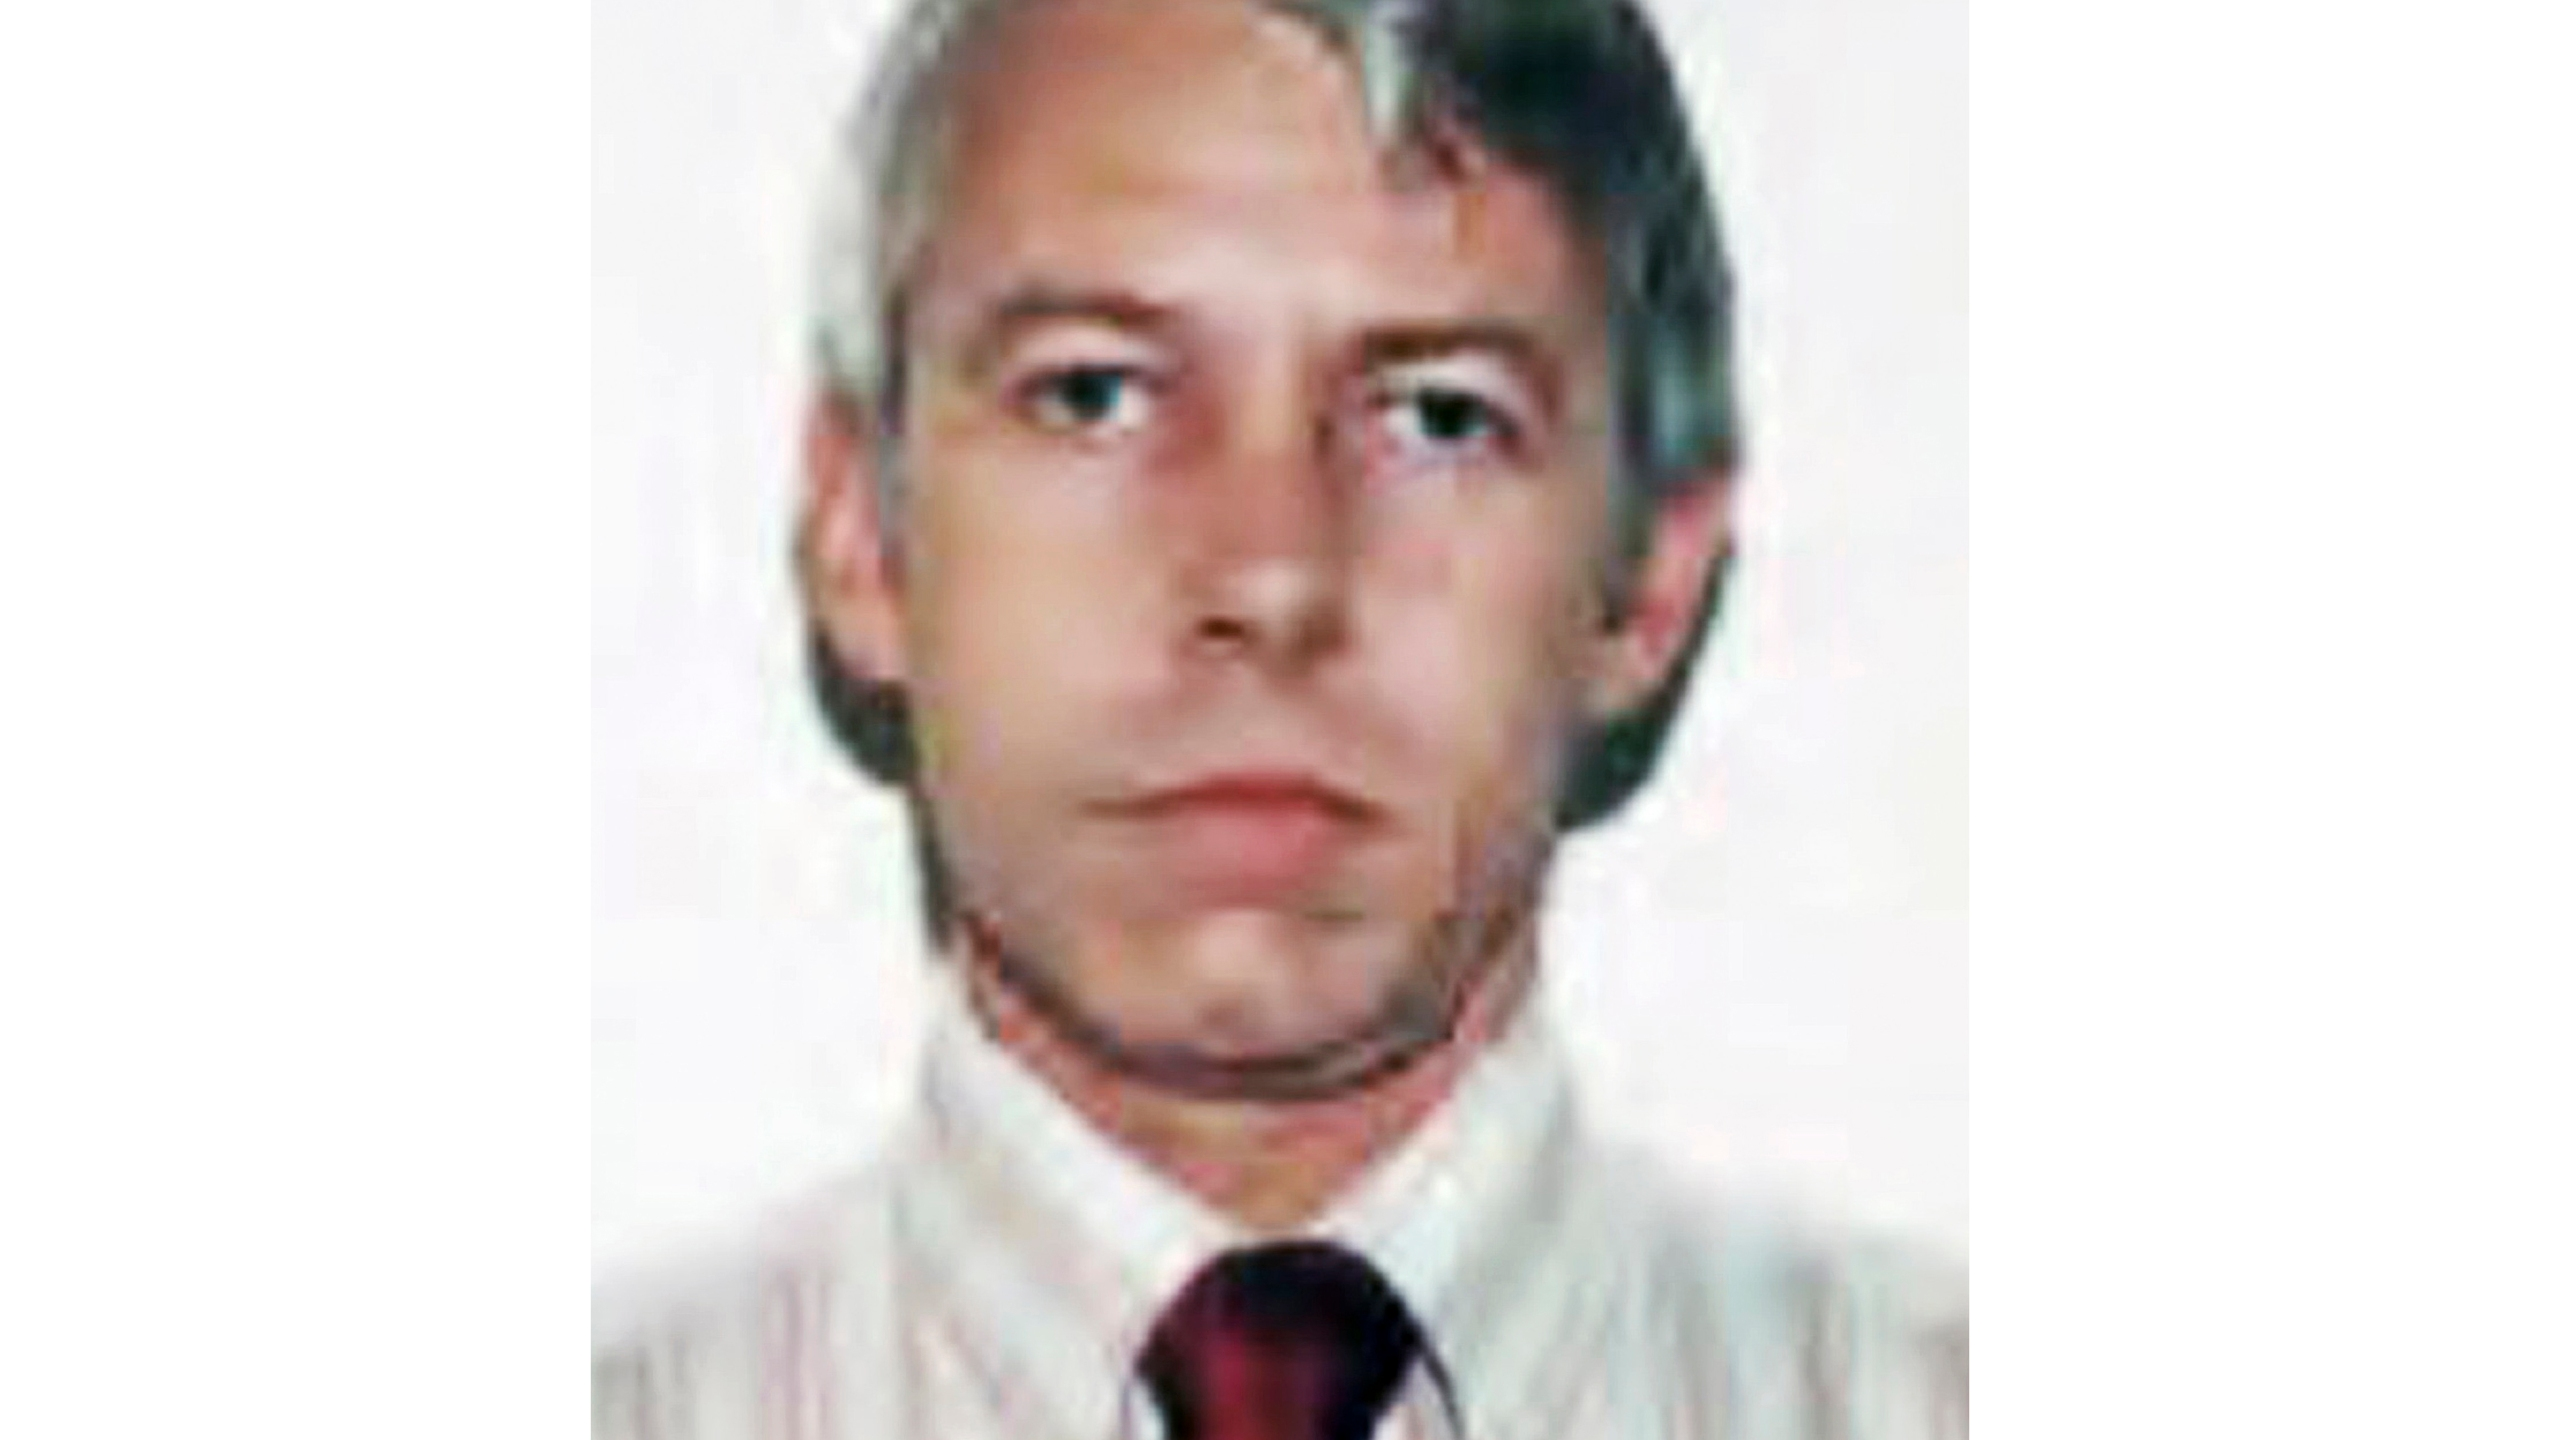 undated file photo shows a photo of Dr. Richard Strauss, an Ohio State University team doctor